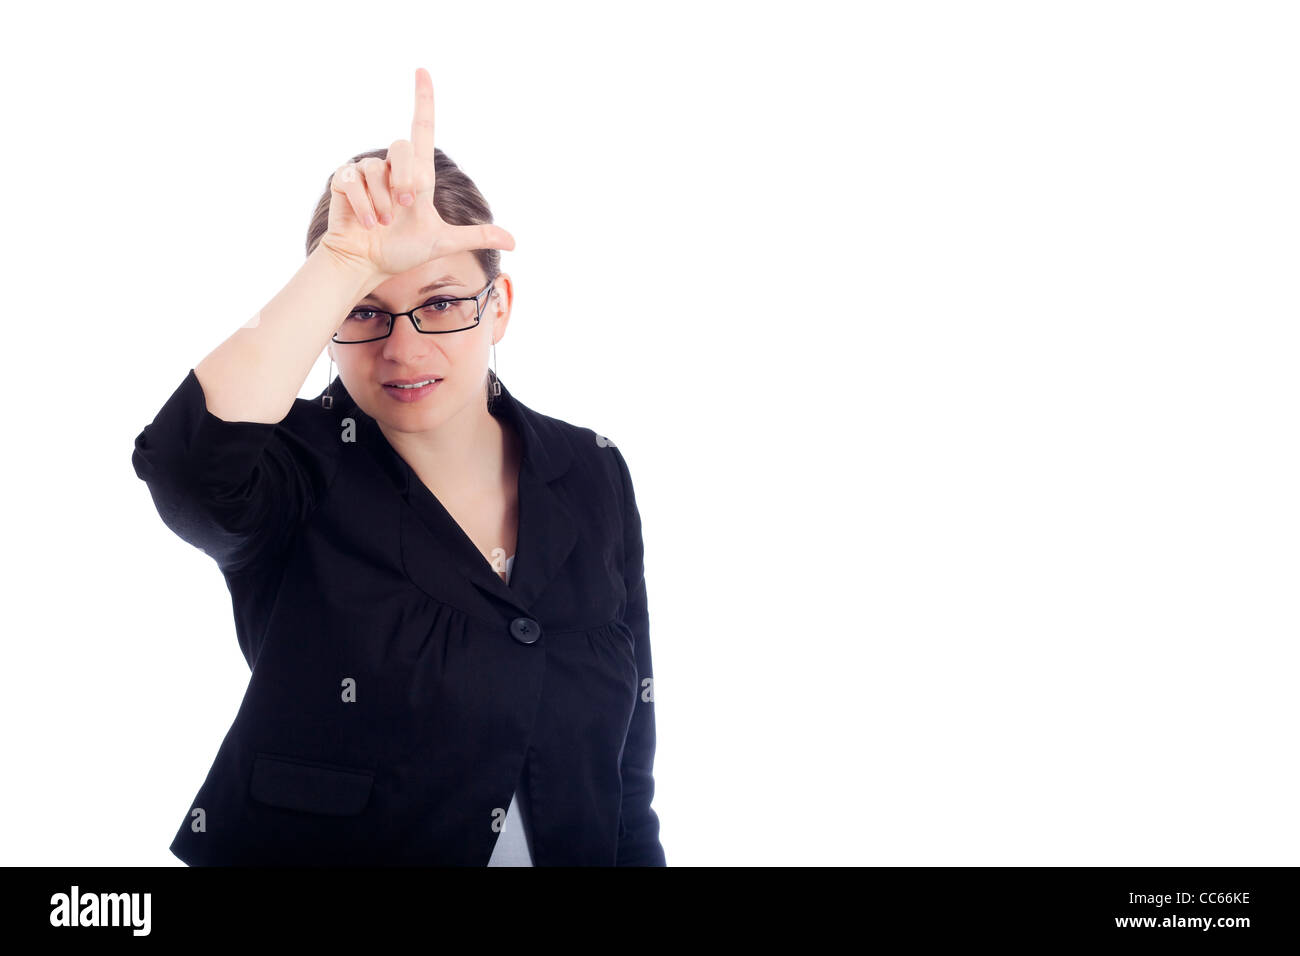 Young business woman gesturing loser sign, isolated on white background. - Stock Image